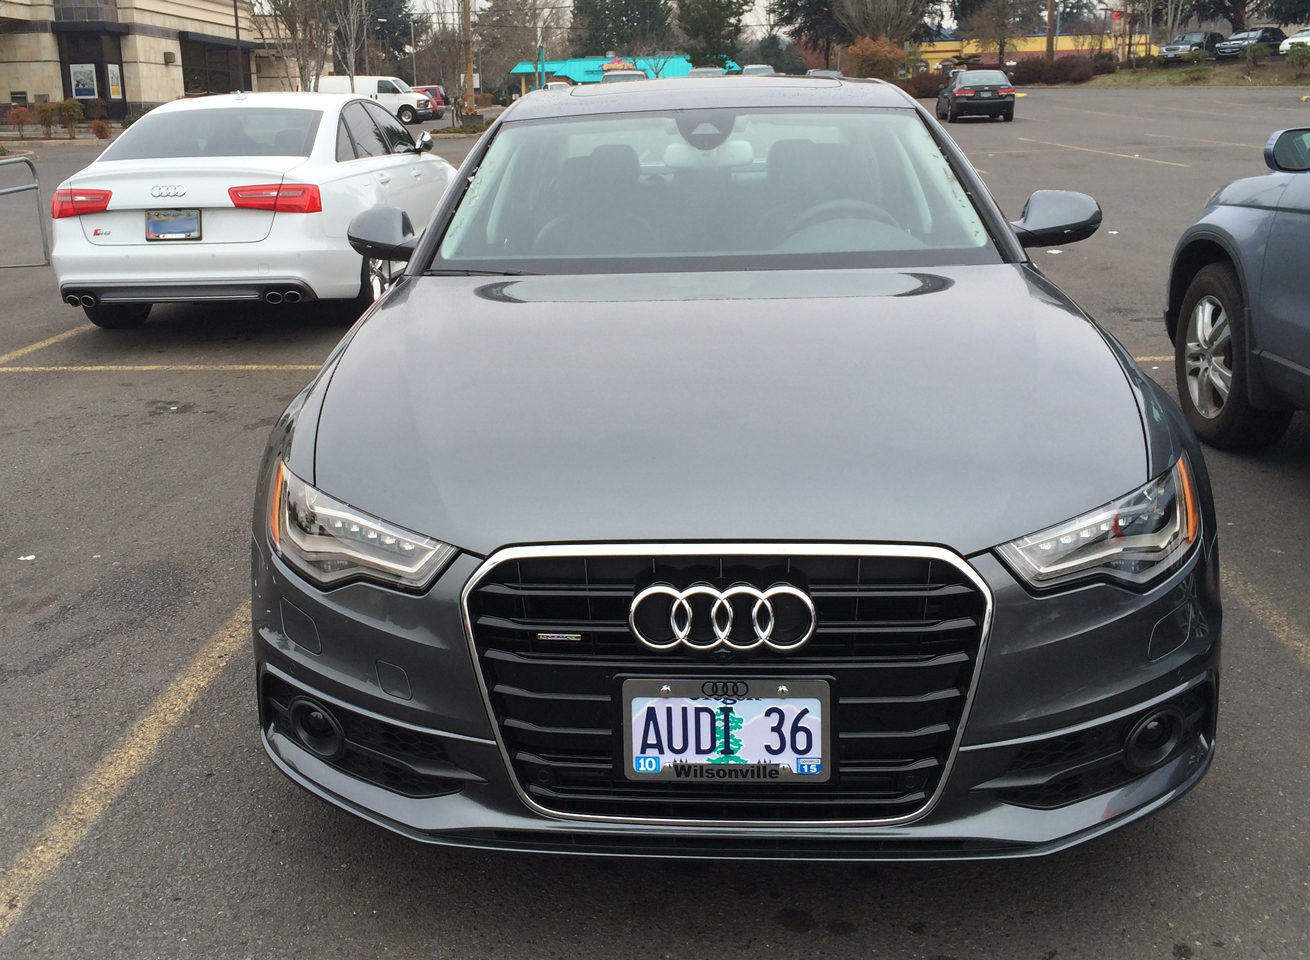 Quick Review And Notes Audi A TDI Audi For Life - Wilsonville audi